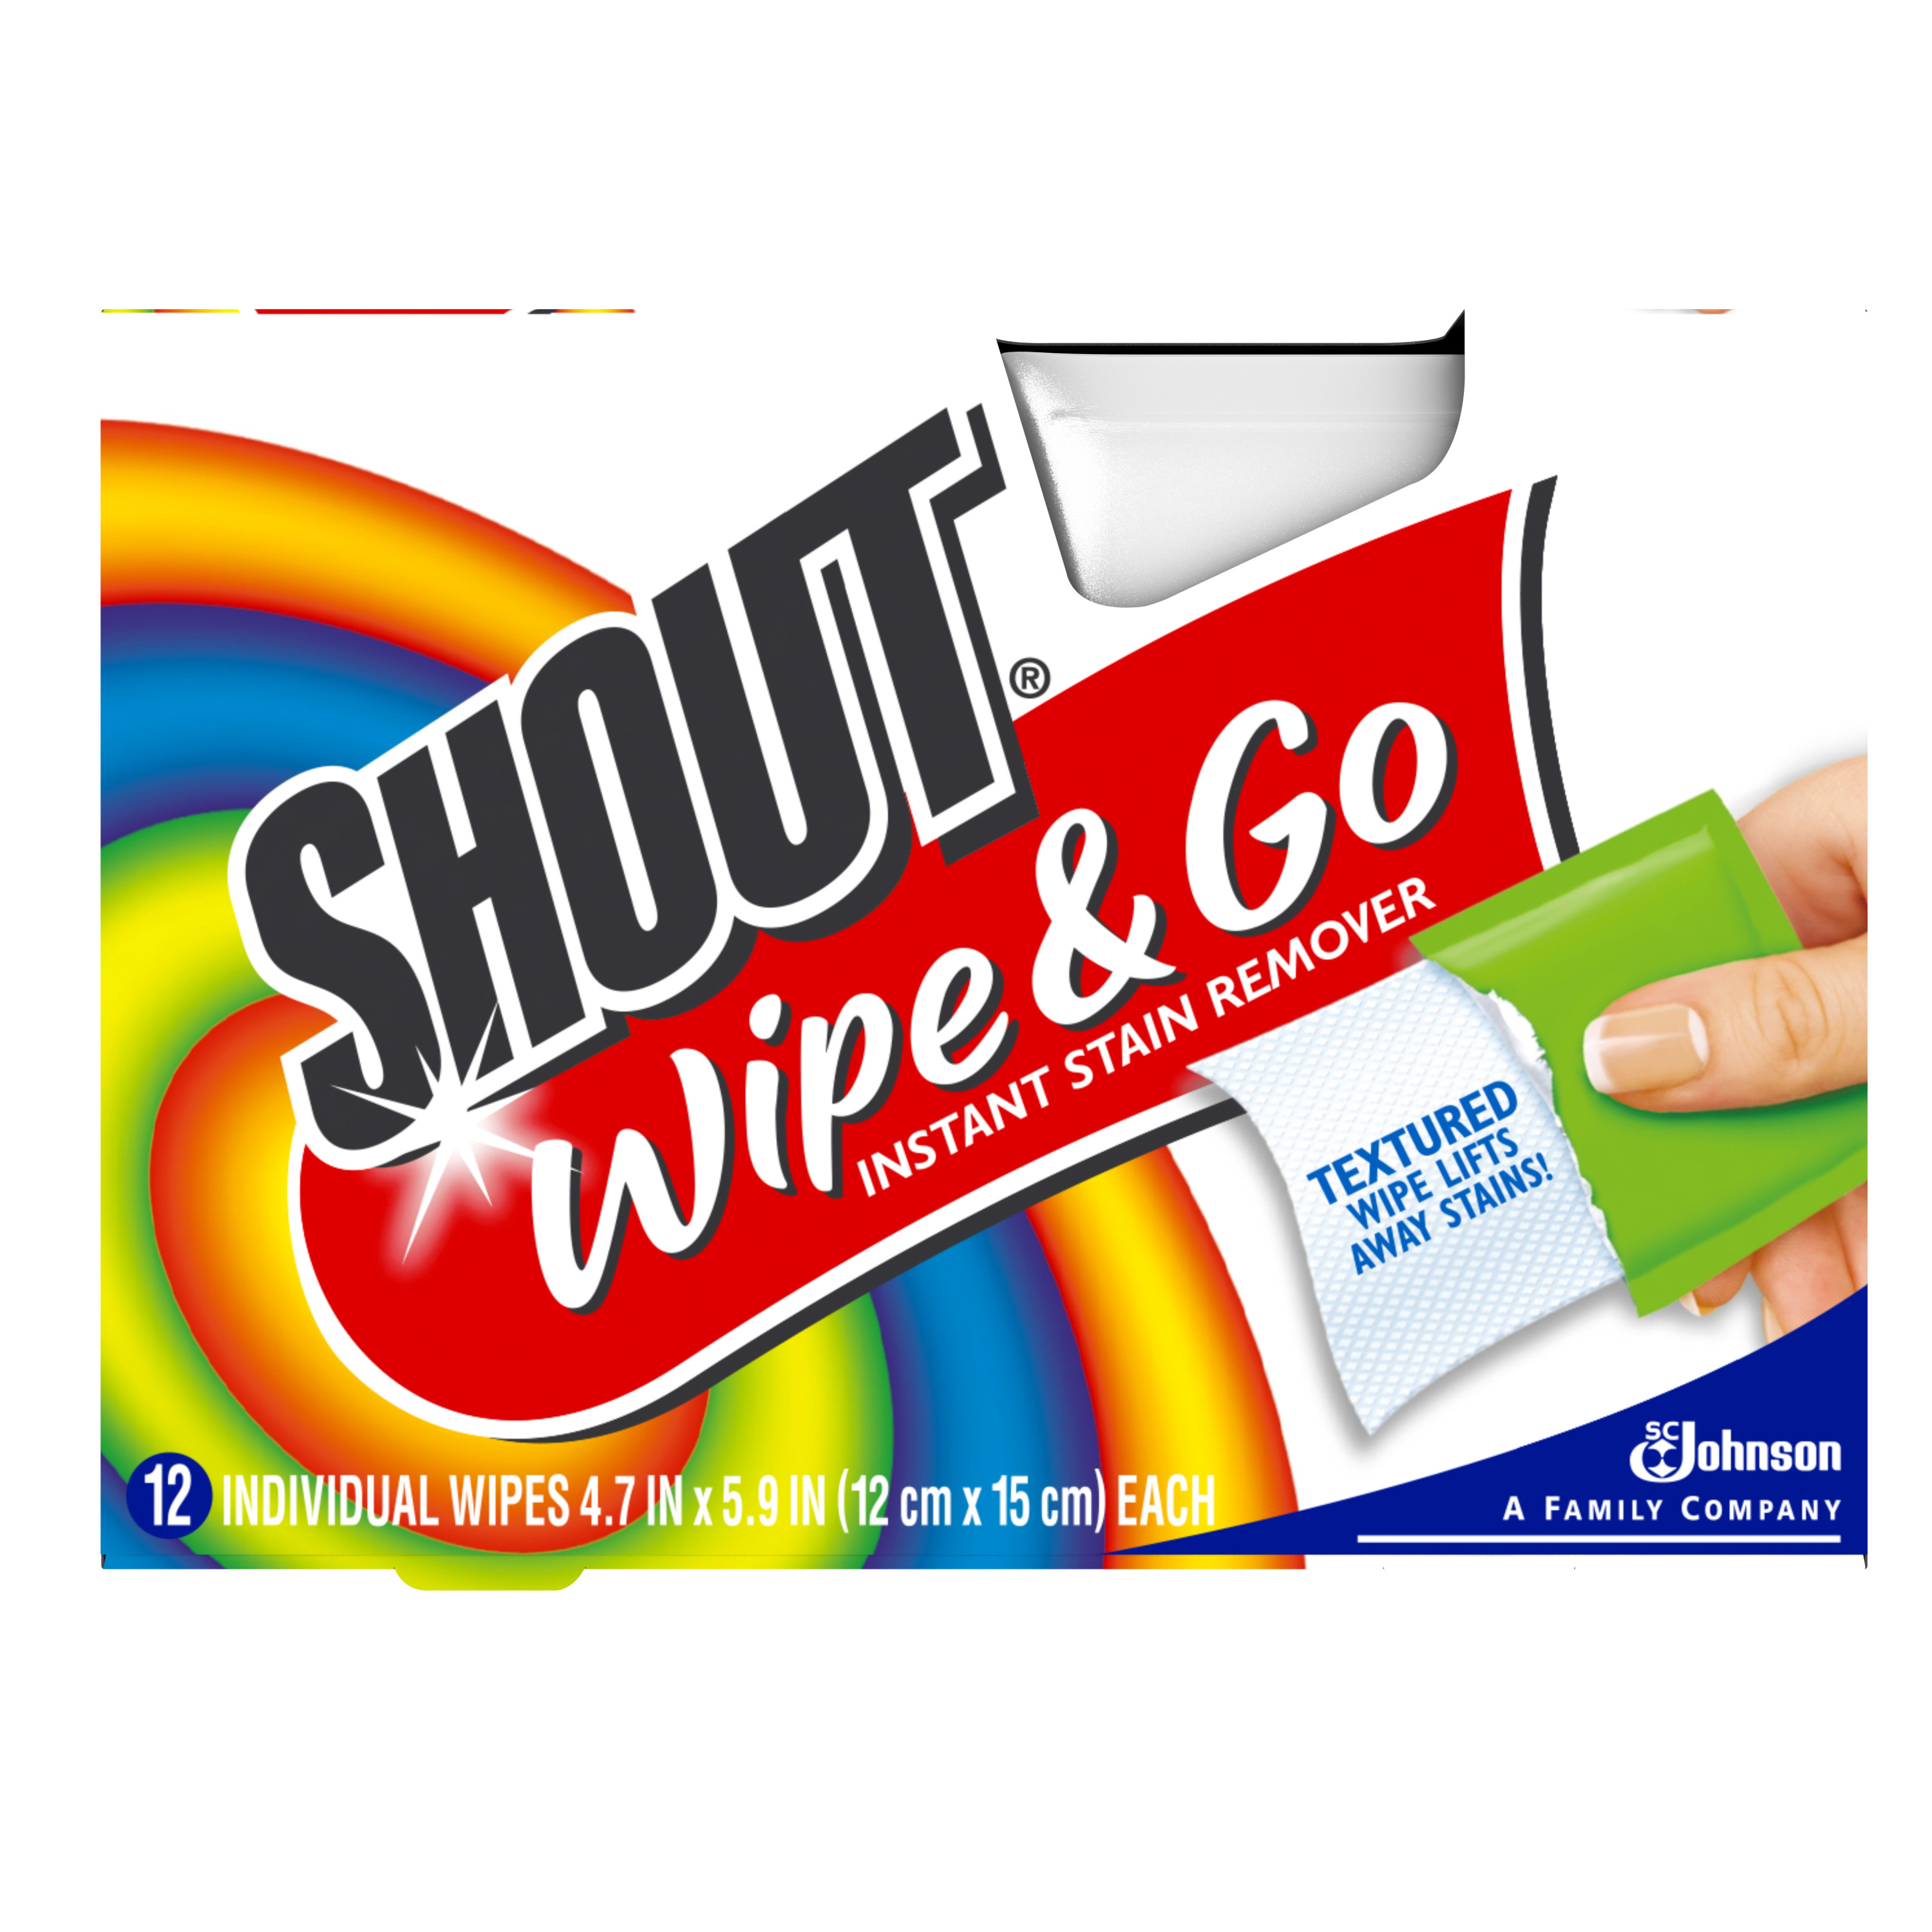 Shout Wipe & Go Wipes 12 count